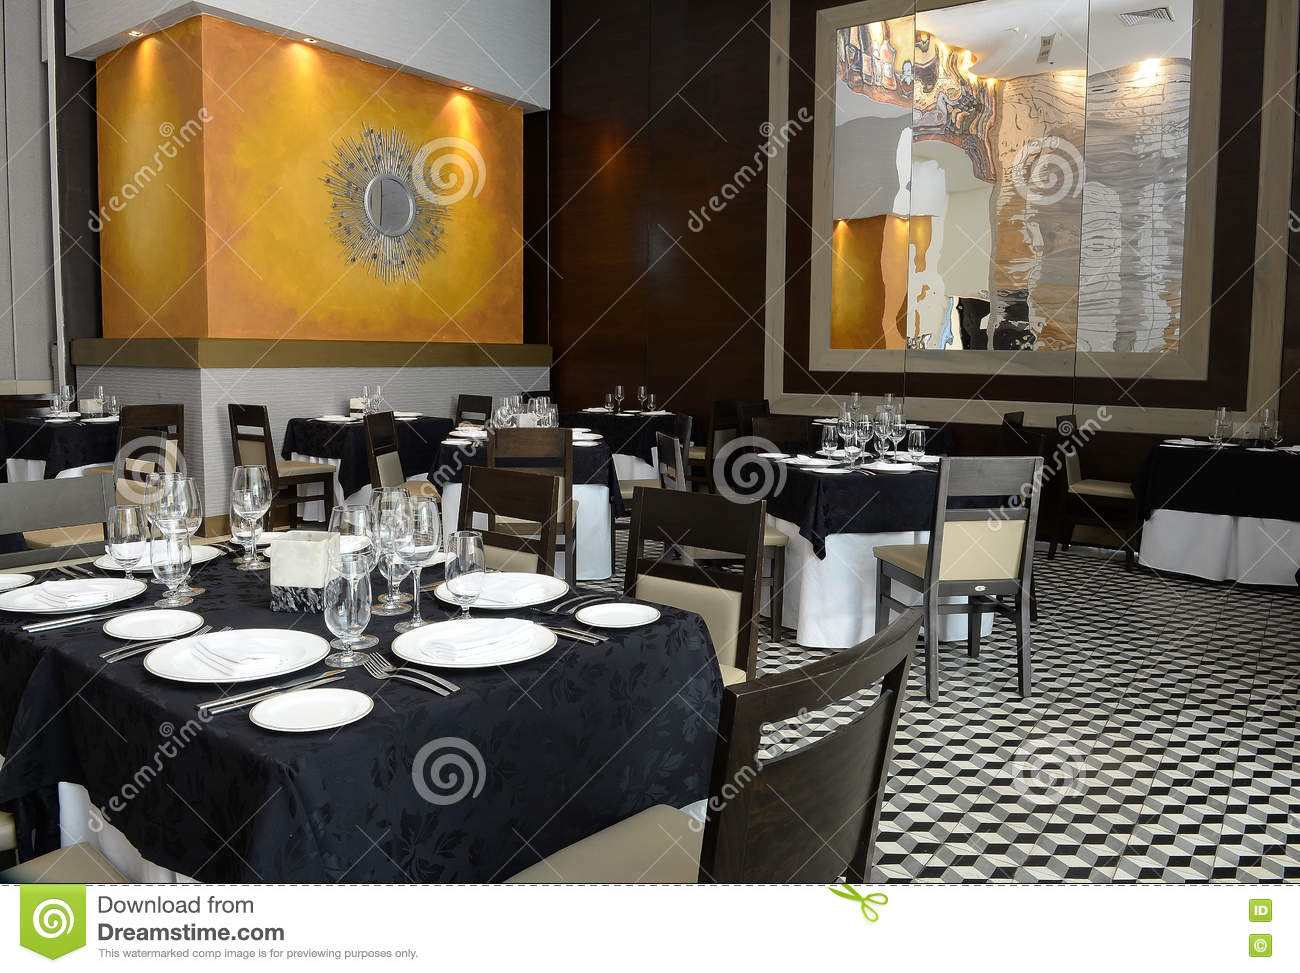 Interior Of Empty Modern Restaurant With Black And White Table Clothes Checkered Tile Flooring